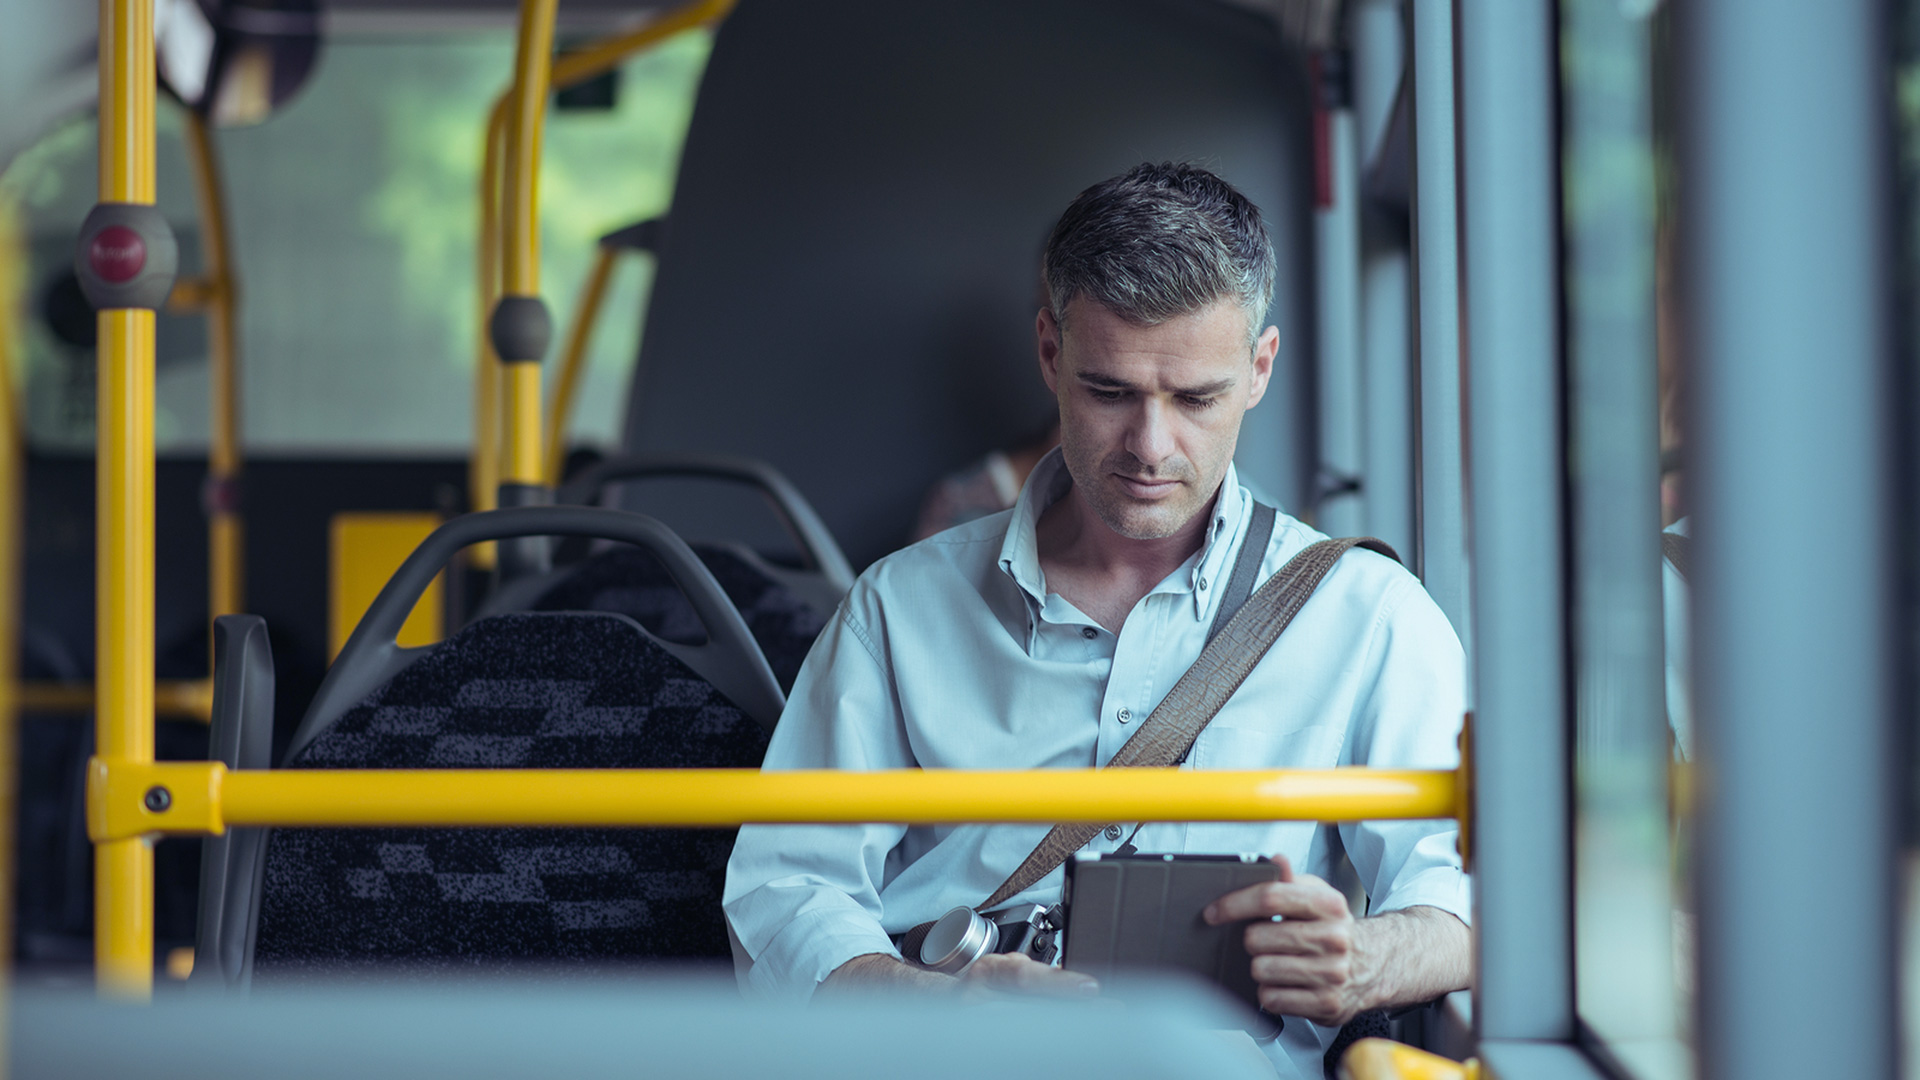 Man looking at tablet on bus